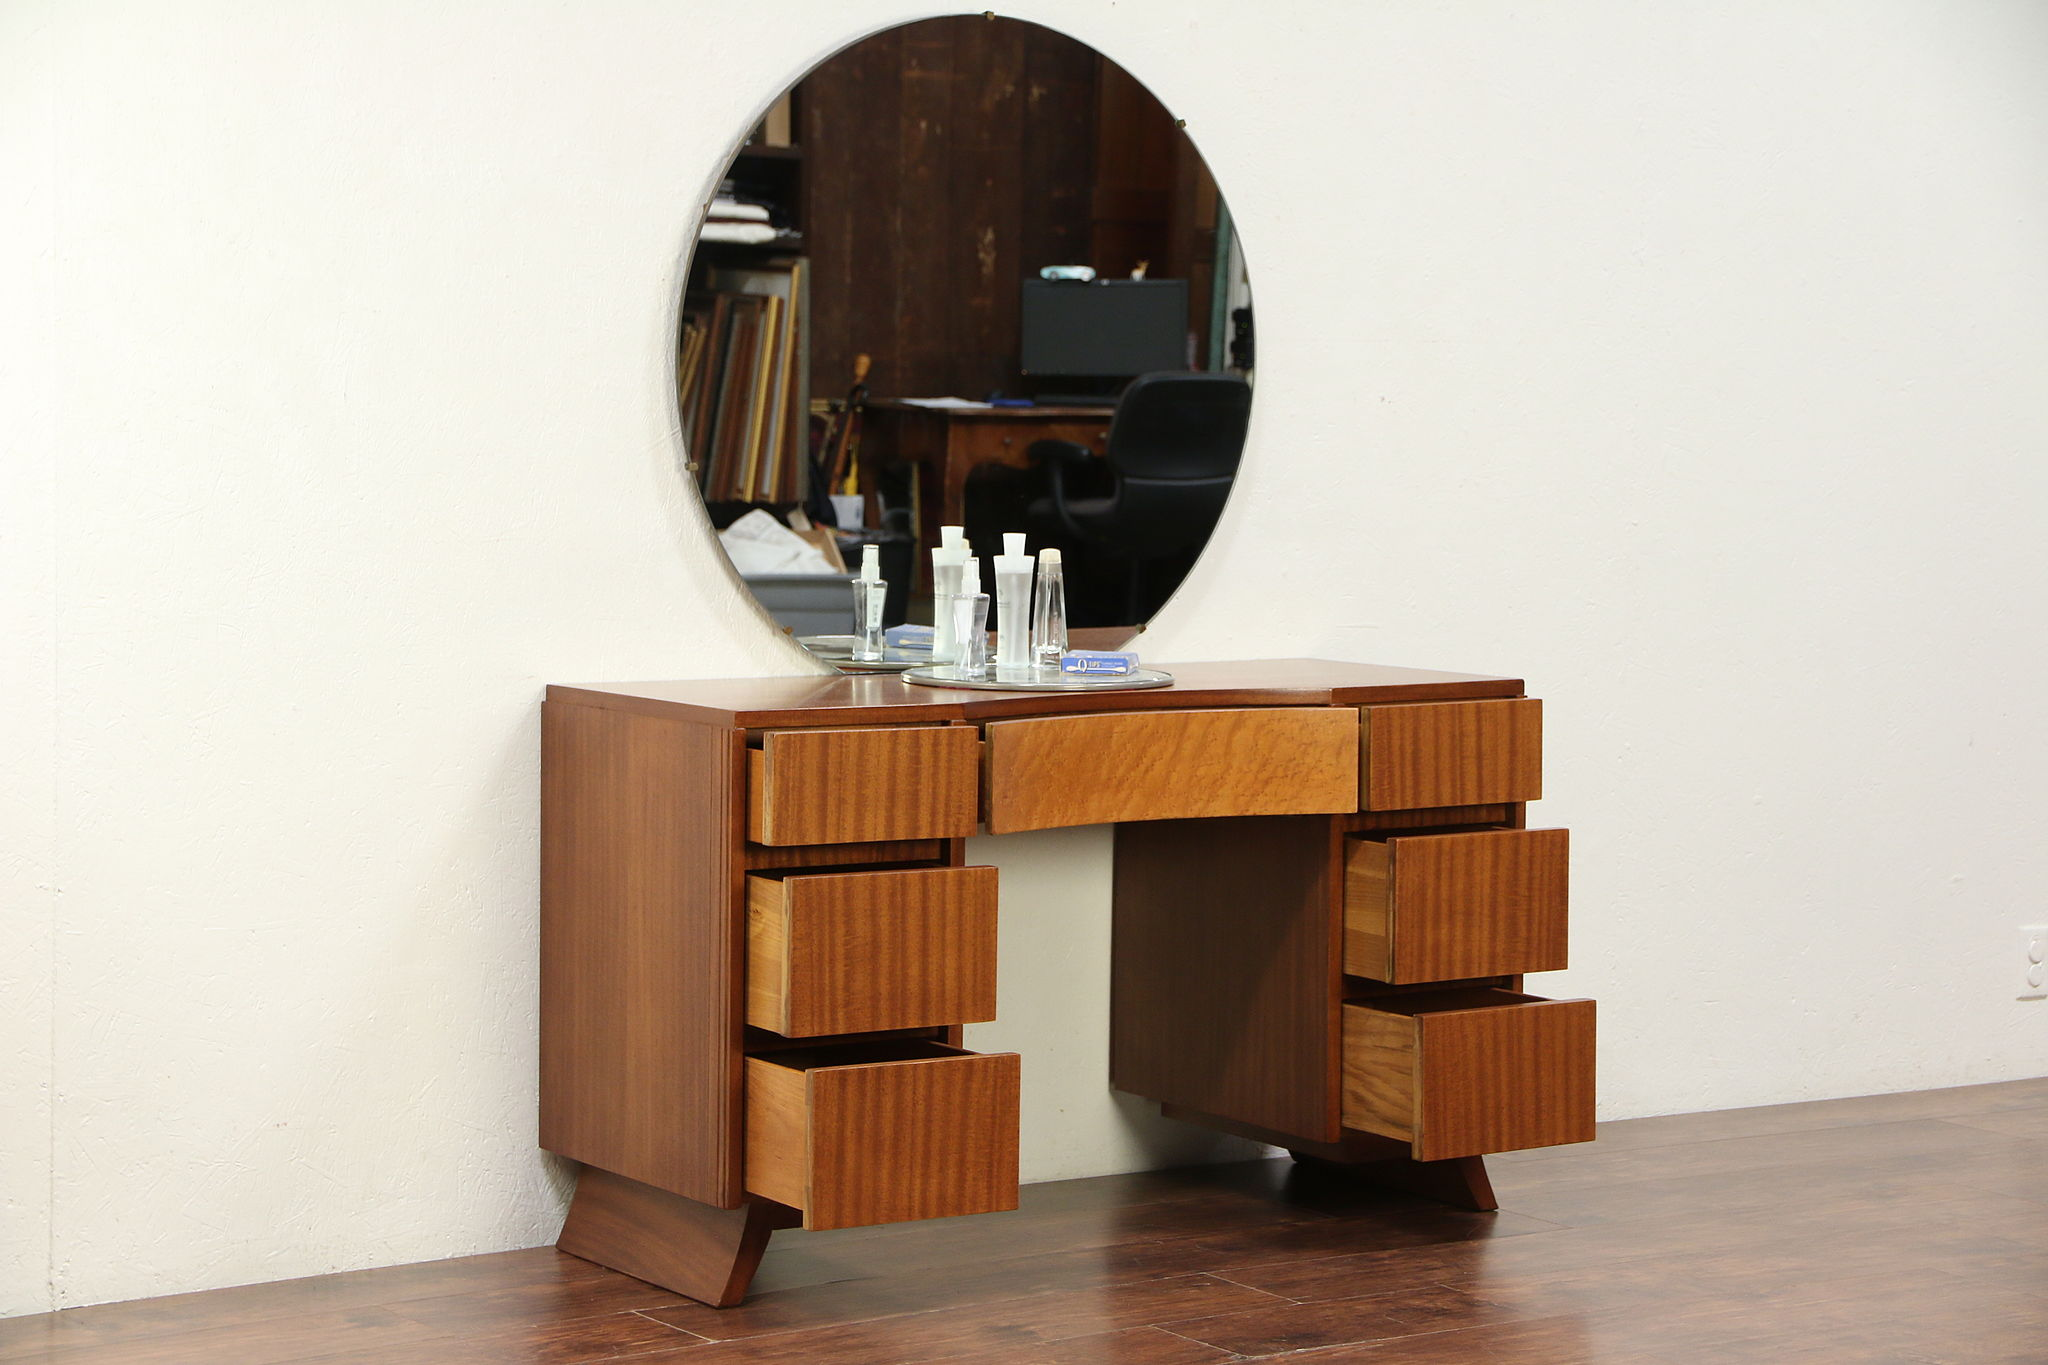 Sold Midcentury Modern Desk Or Vanity Mirror 1960 Vintage Curly Maple Rway 29523 Harp Gallery Antiques Furniture